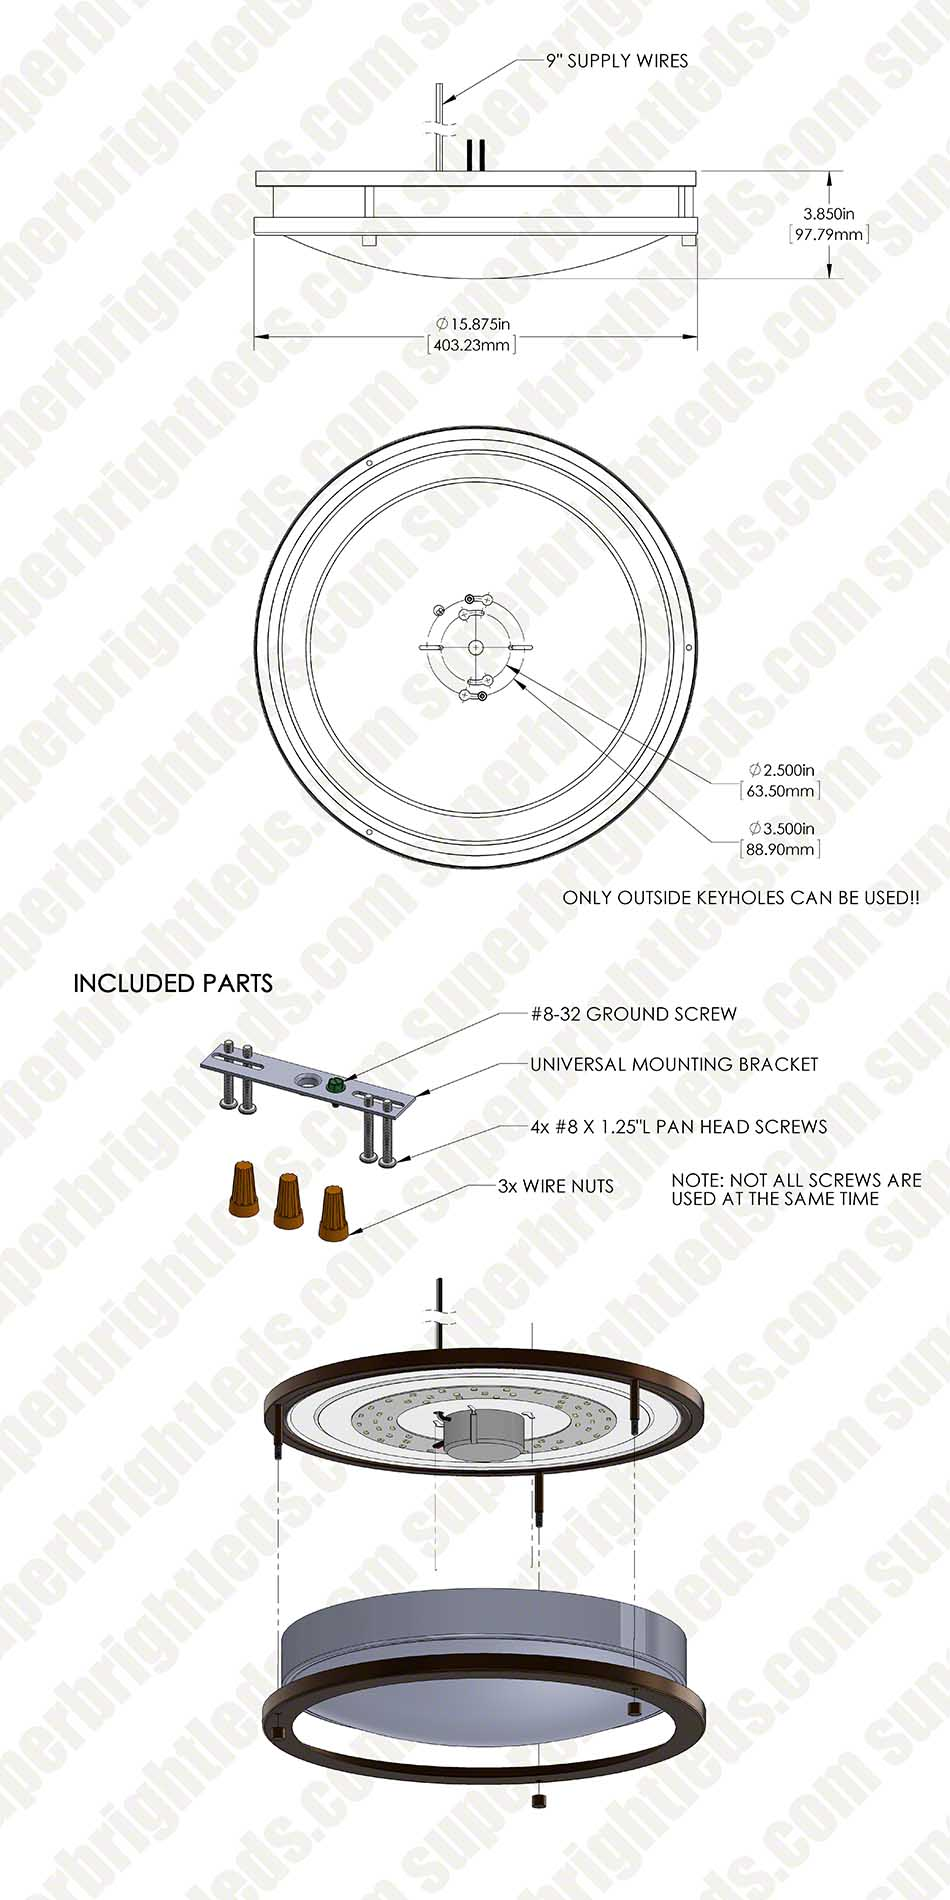 16 Flush Mount Led Ceiling Light W Brushed Nickel Or Oil Rubbed Wiring Diagram 120v Dimmable 23w